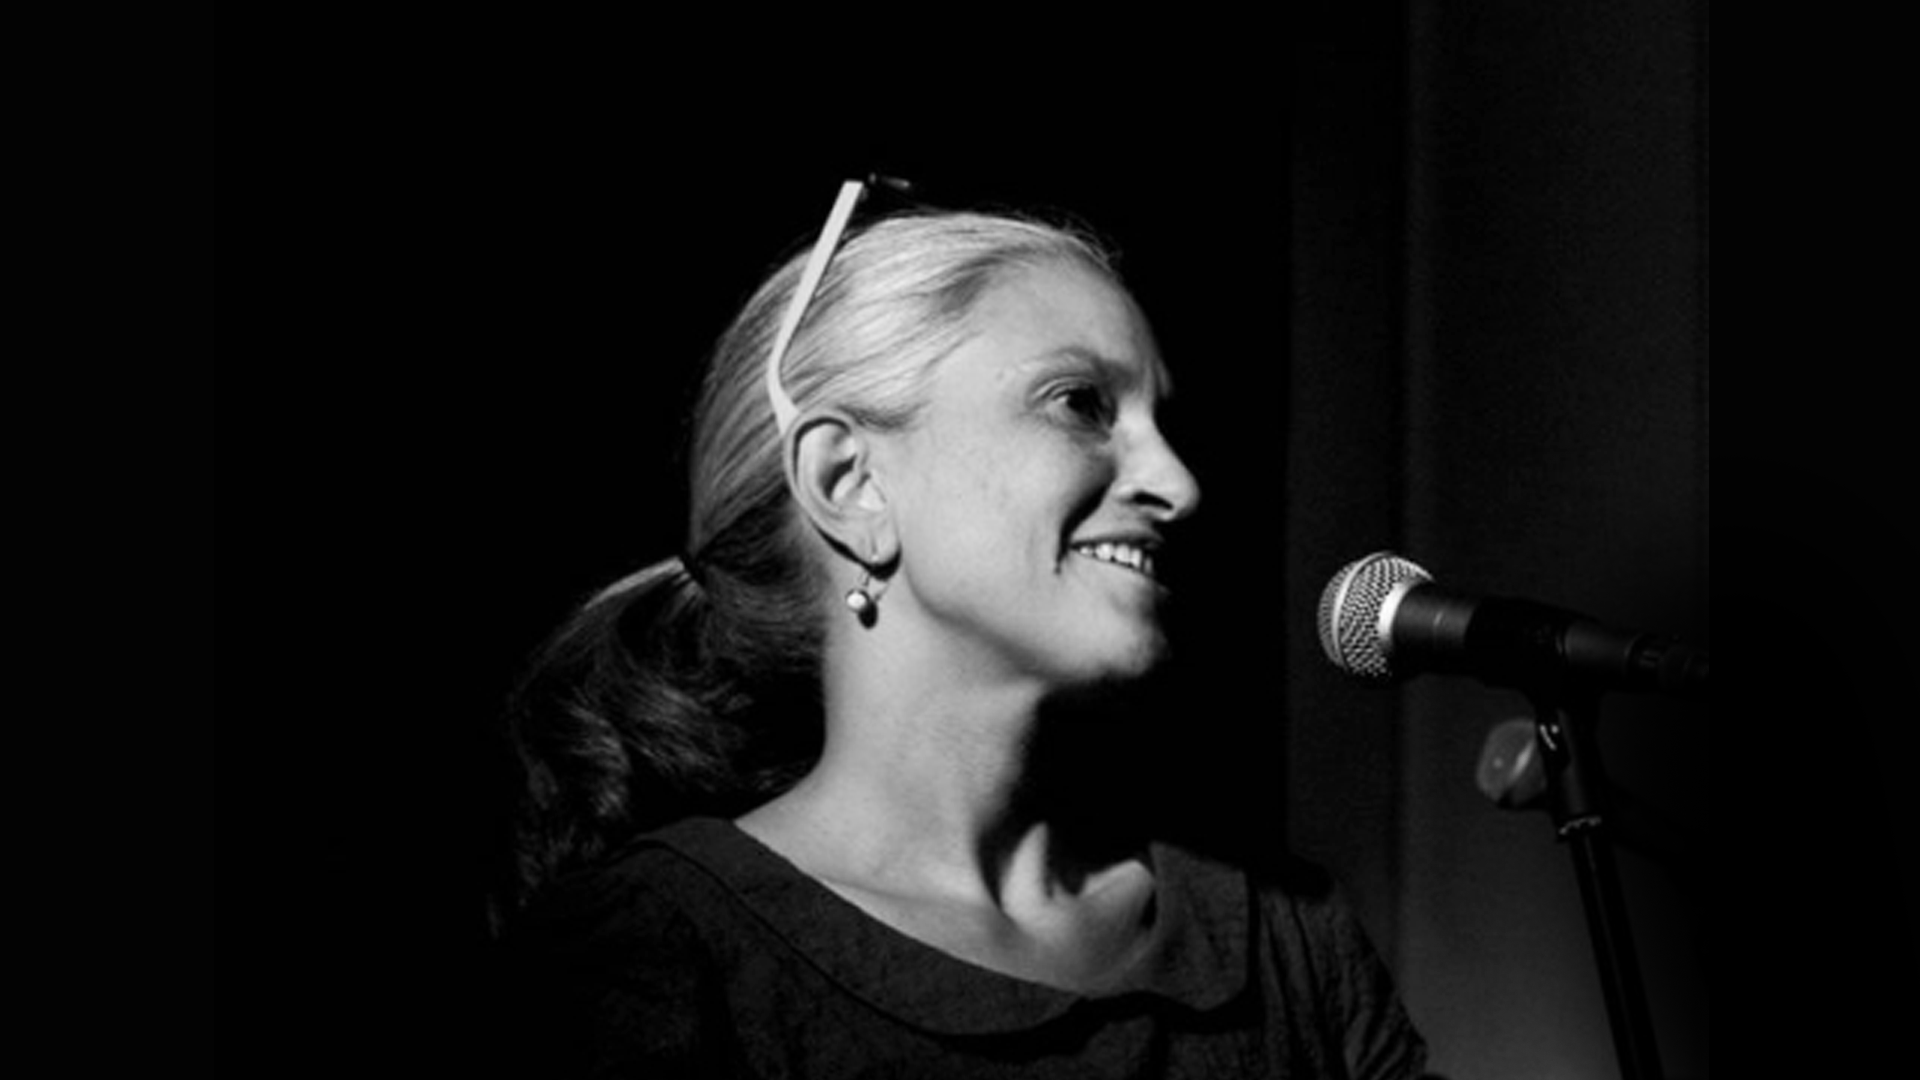 Black and white photograph of a woman speaking into a microphone. Only her face is clearly visible. She has fair hair and slender features.